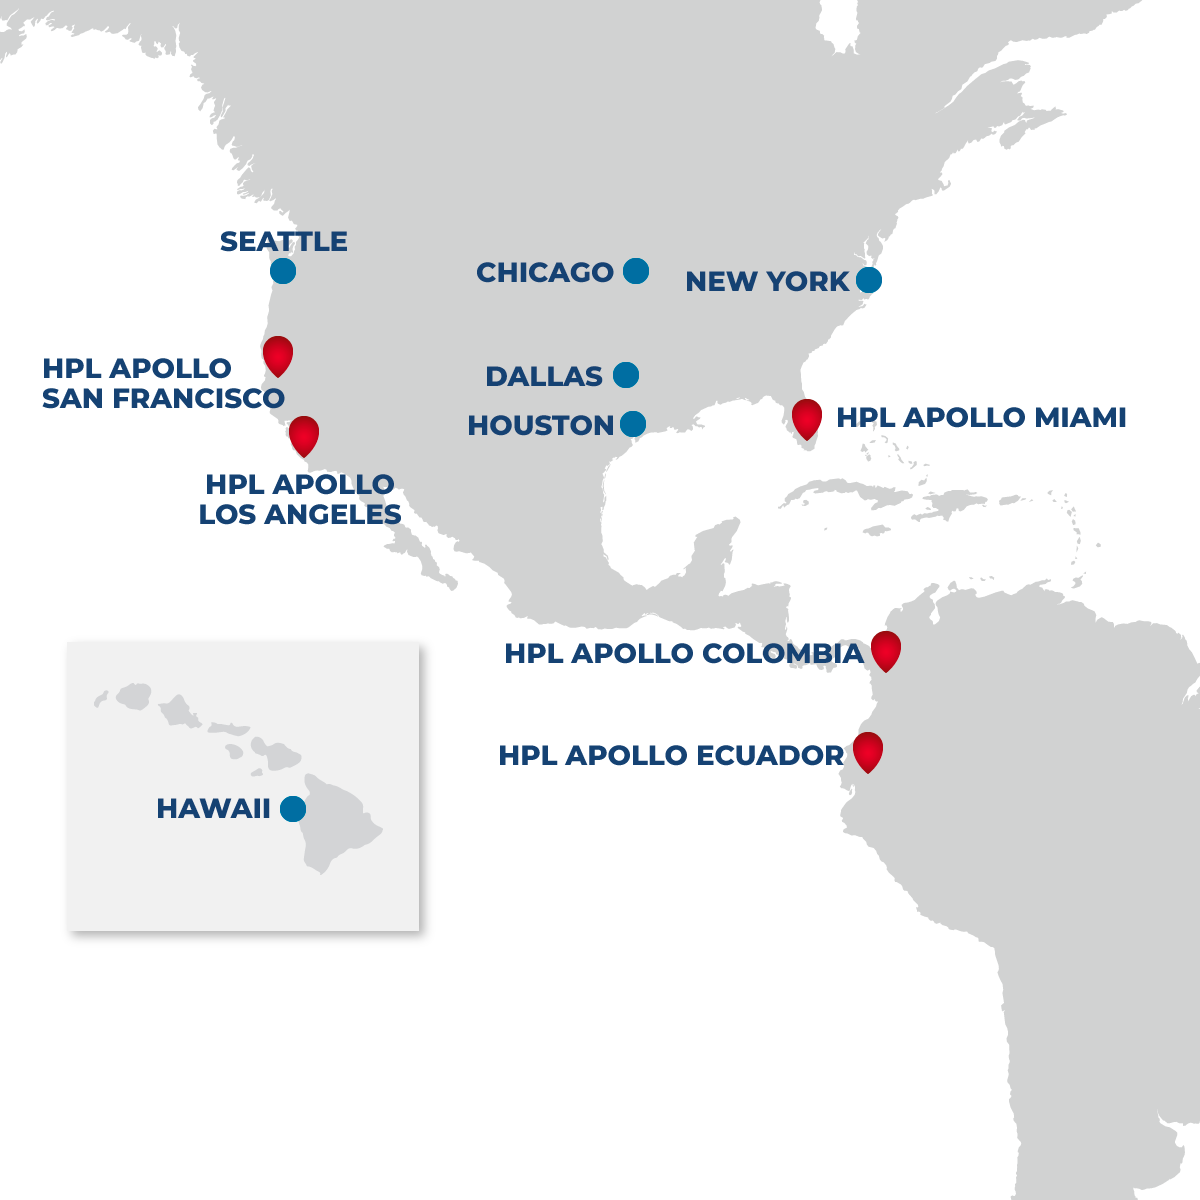 Map of HPL Apollo locations in Americas